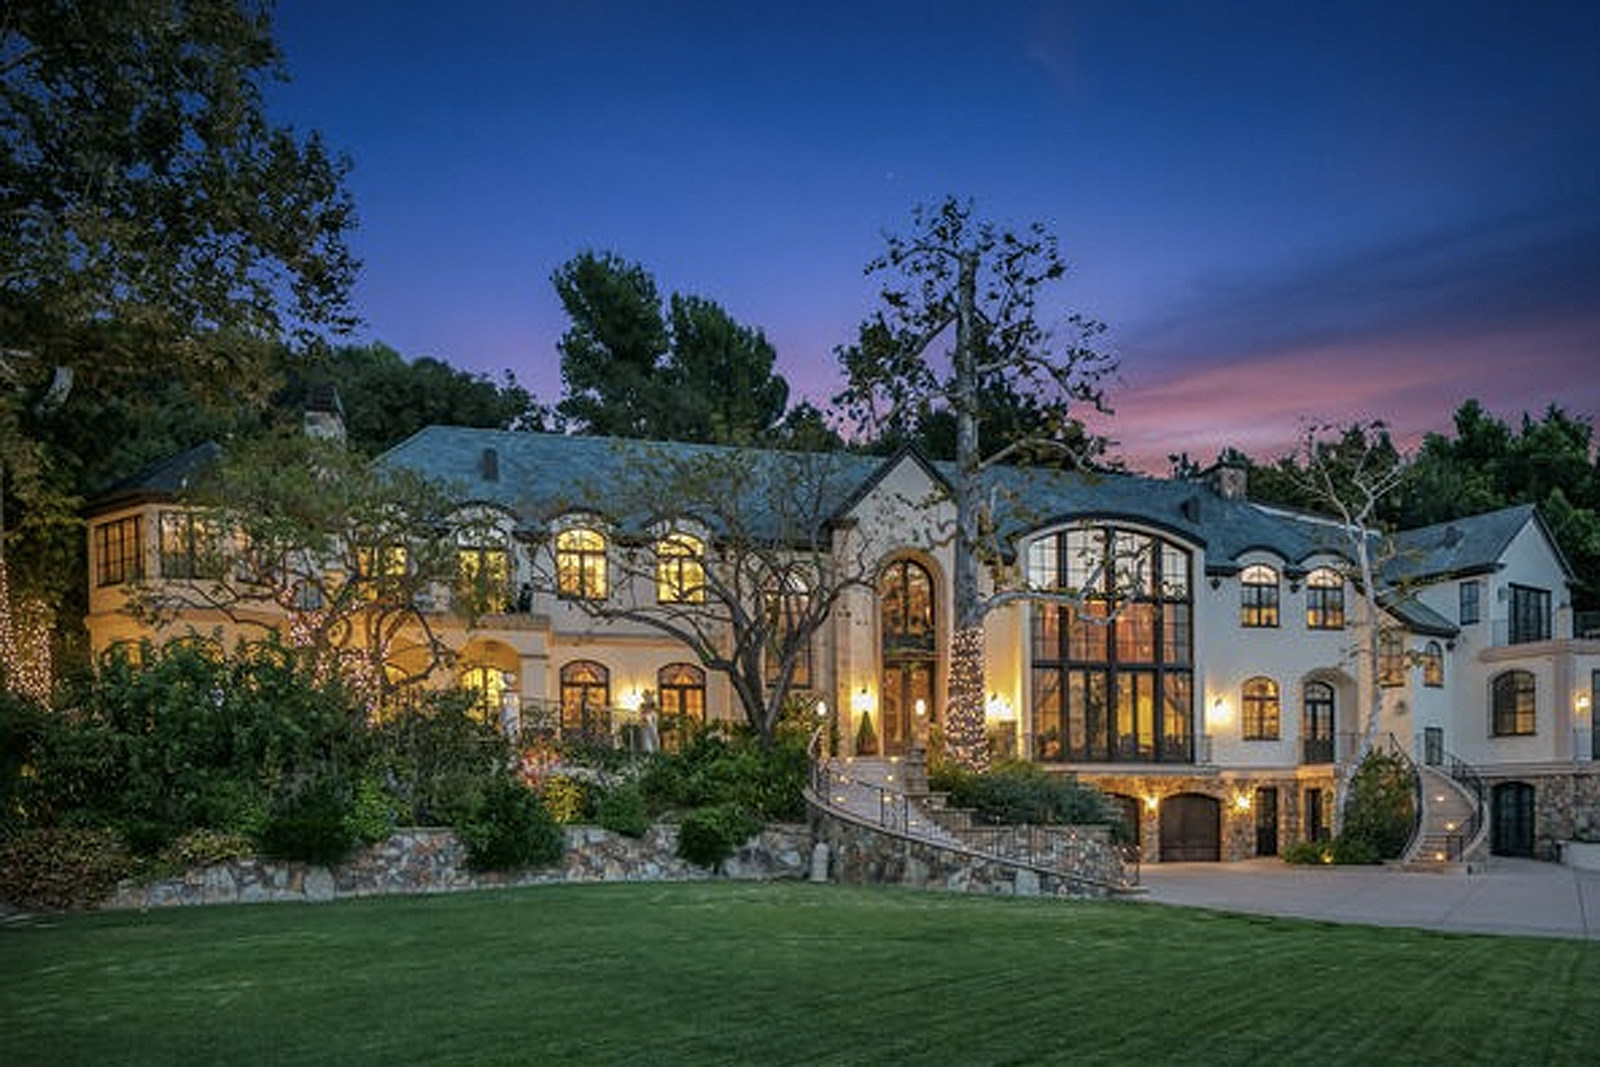 Gene Simmons' 'Palatial' Beverly Hills Home Sells for $16 Million